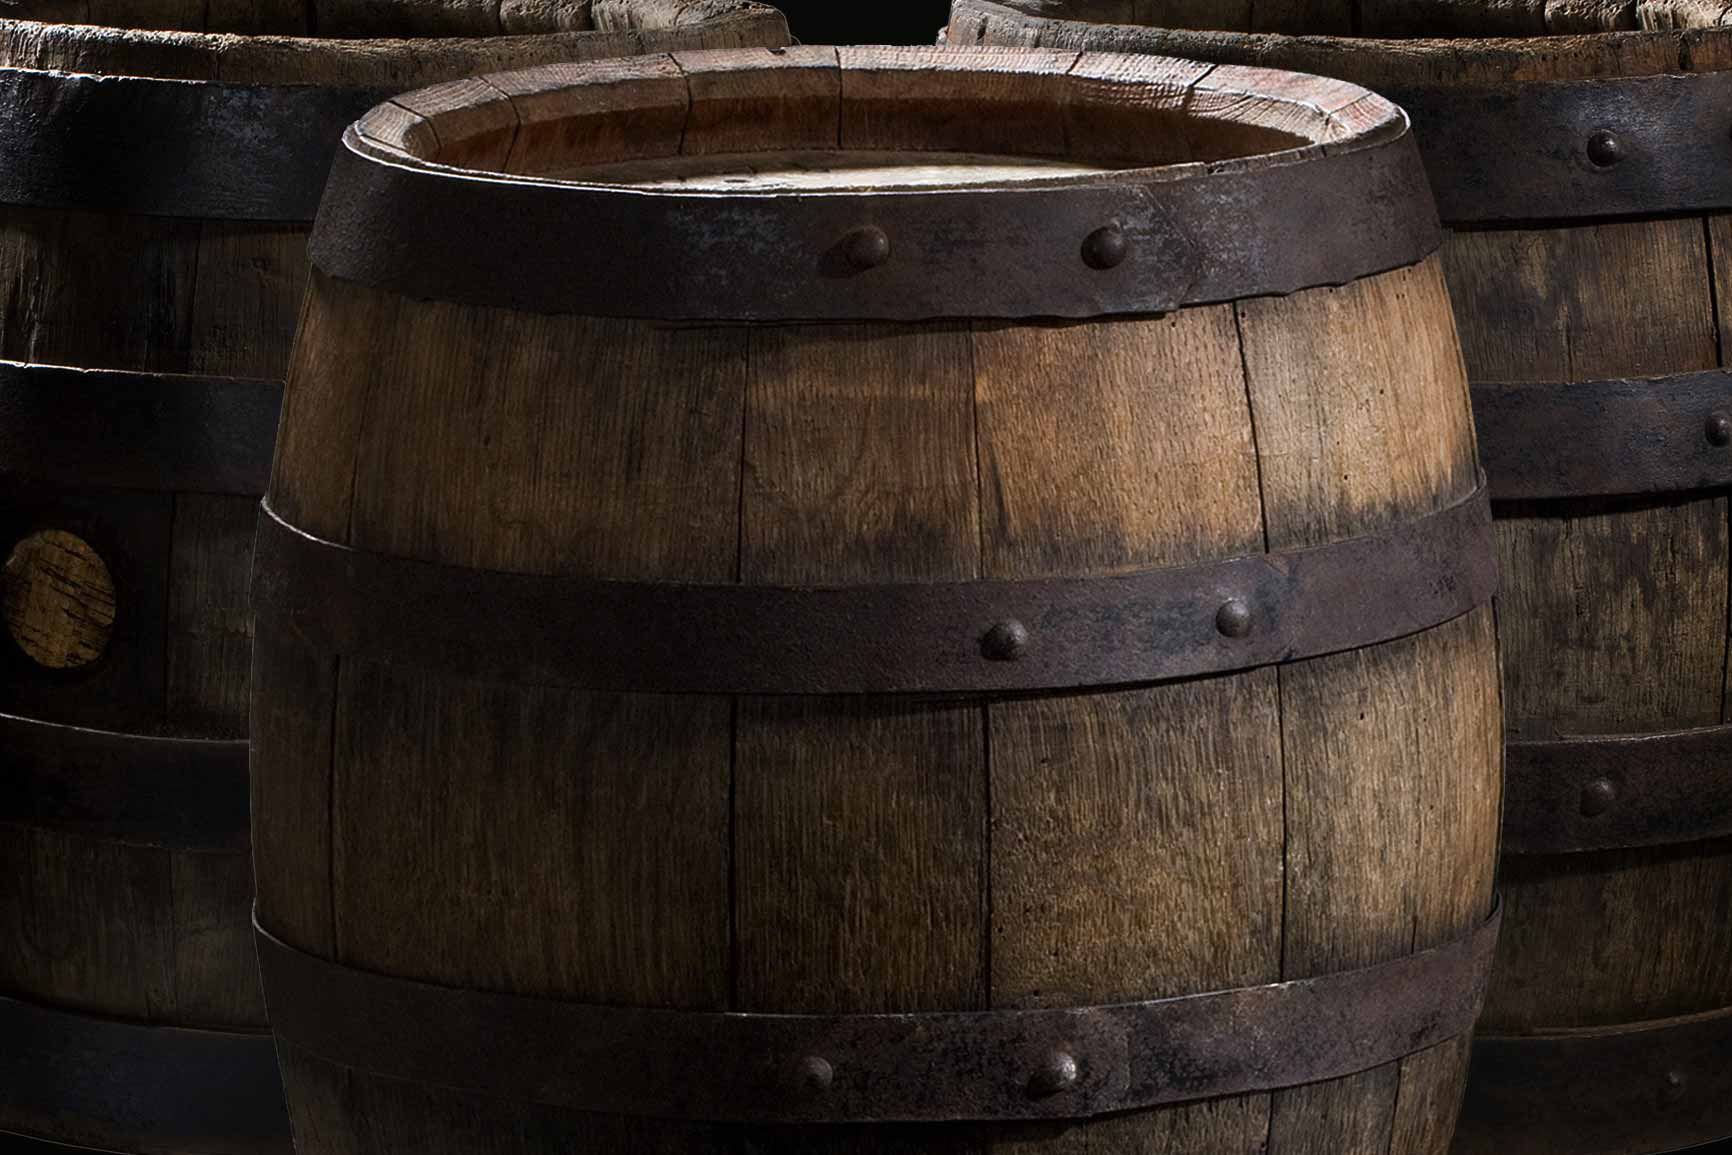 Three tuns barrels